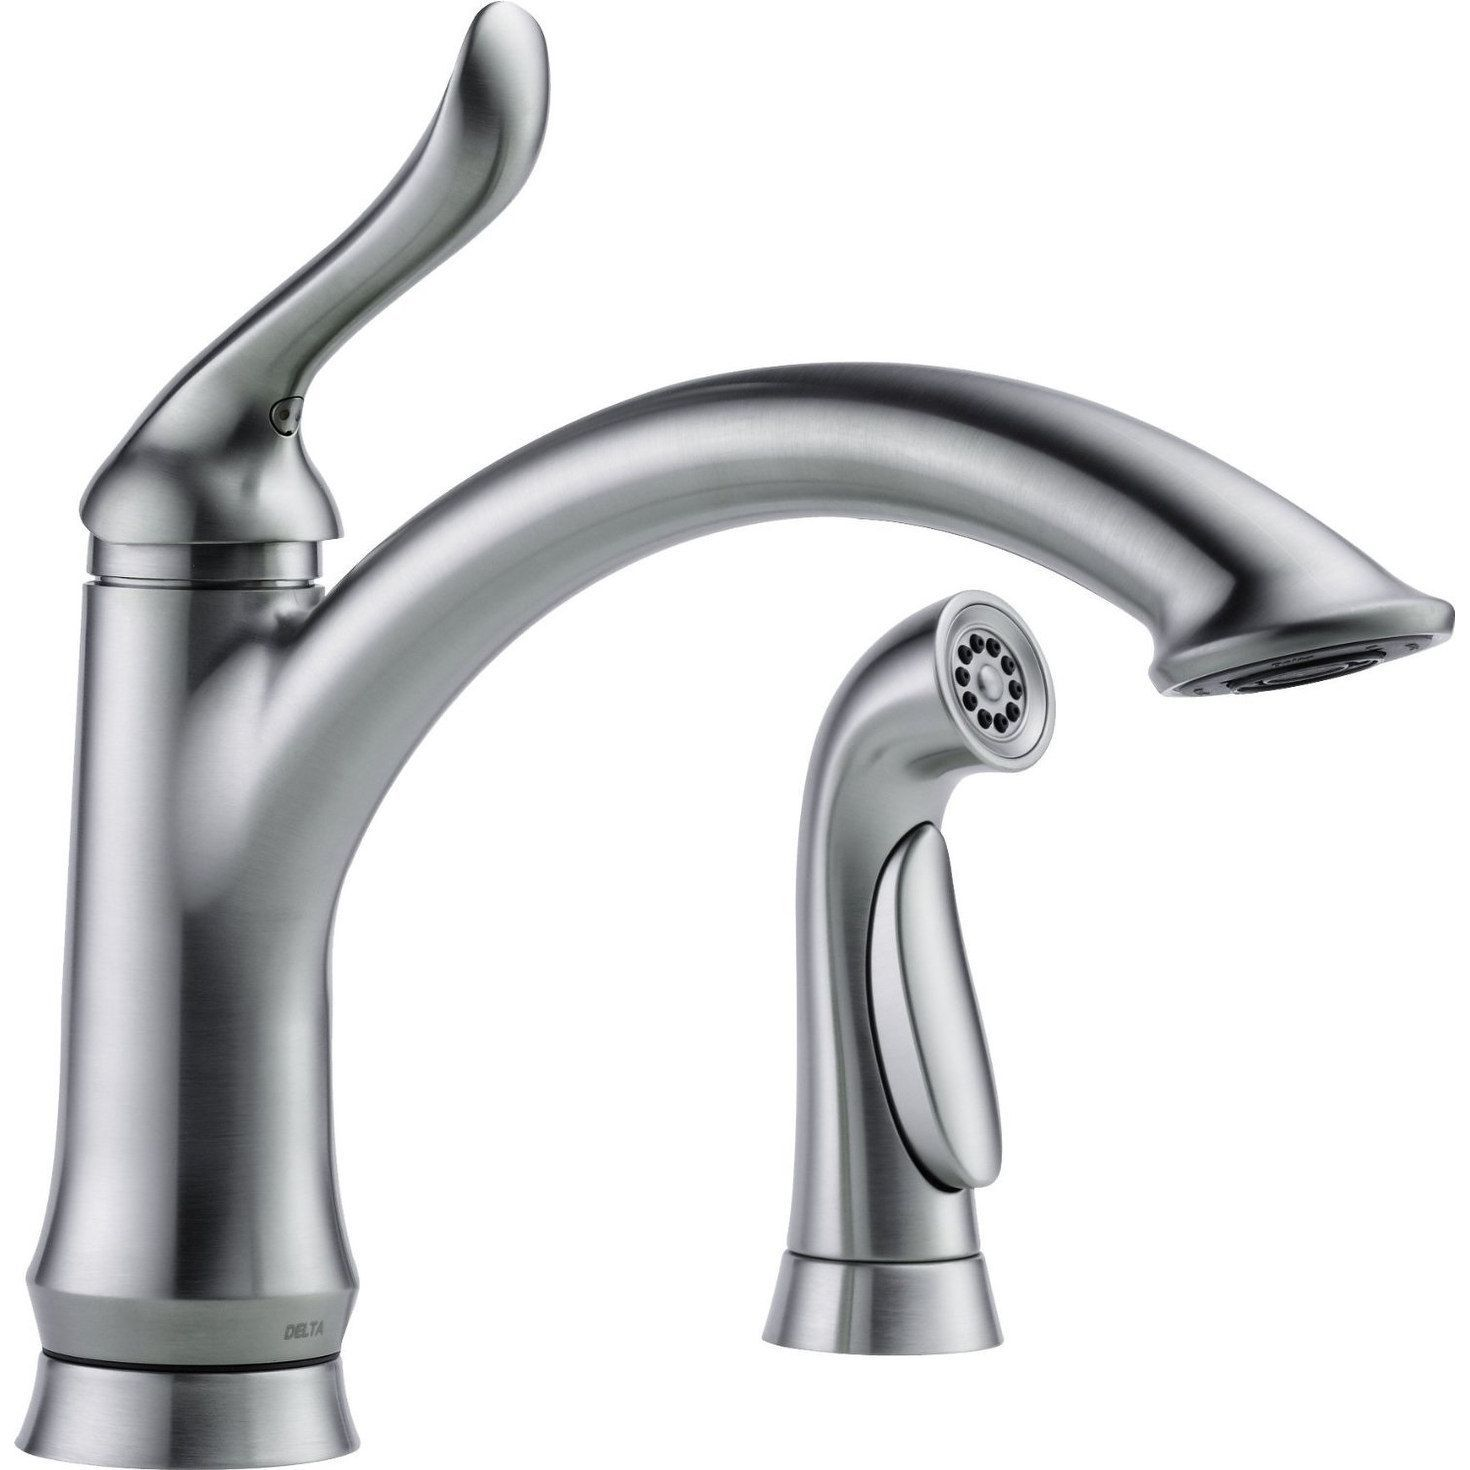 Delta 4453 Ar Dst Linden Single Handle Kitchen Faucet With Spray Arctic Stainless Steel Silver Products Kitchen Faucet With Sprayer Faucet Delta Fauce